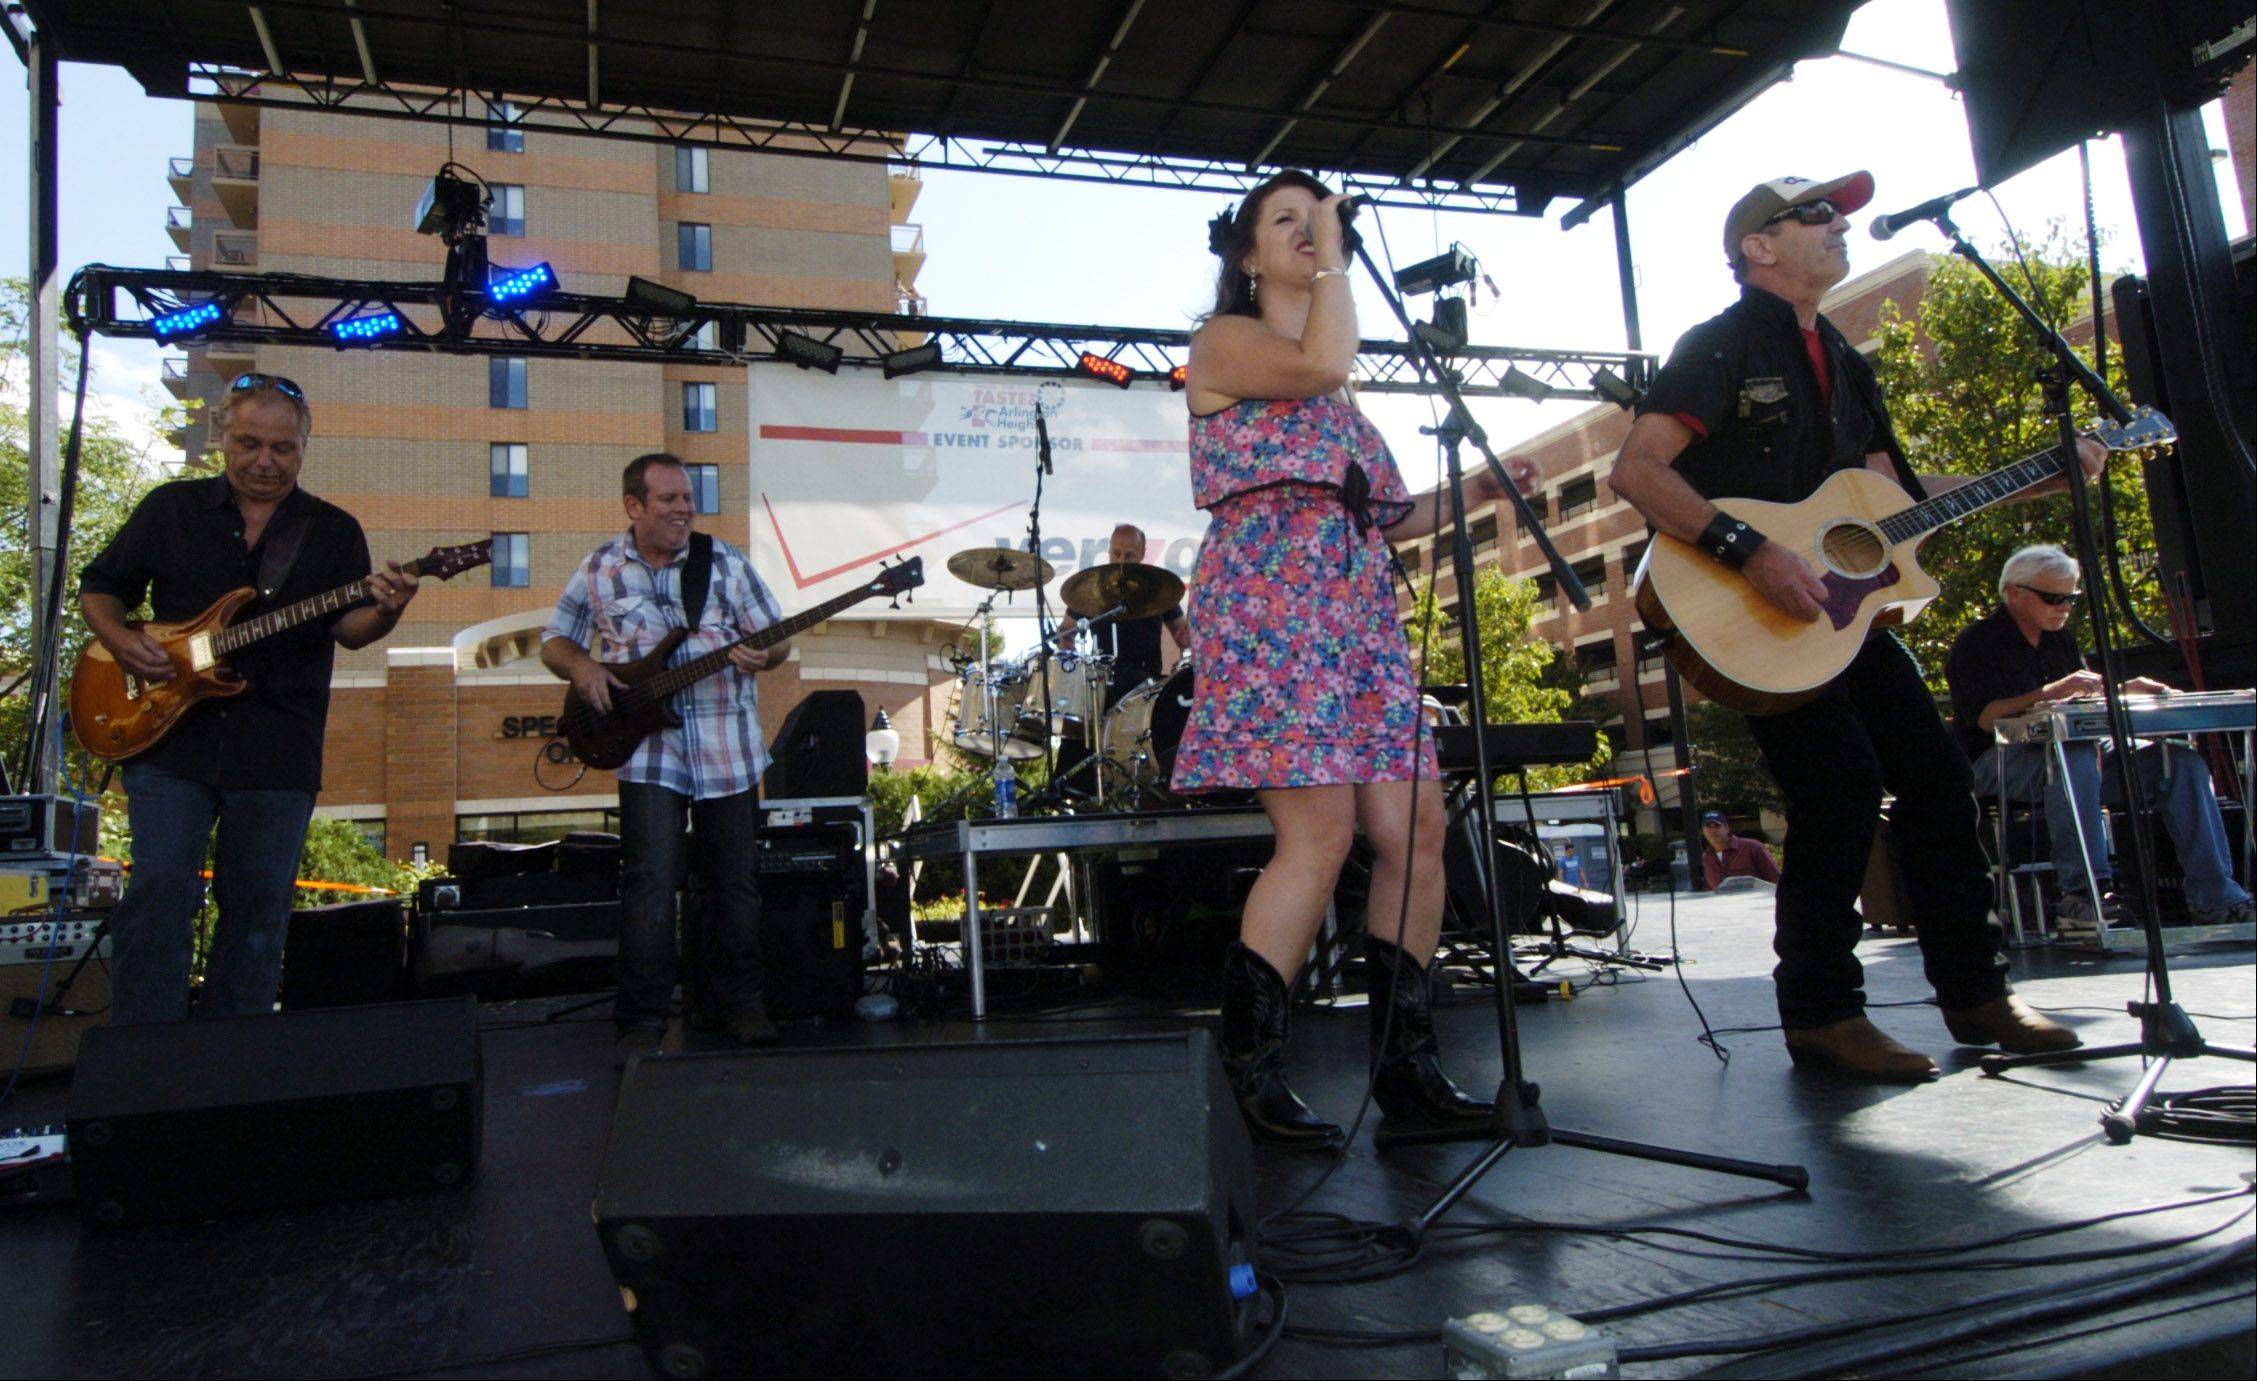 """Faith and Whisky"" with singer Camille Eiseman and guitarist/singer Terry Tank, who are both from Crystal Lake, performs during the Suburban Chicago's Got Talent finals Saturday at the Mane Event in downtown Arlington Heights."